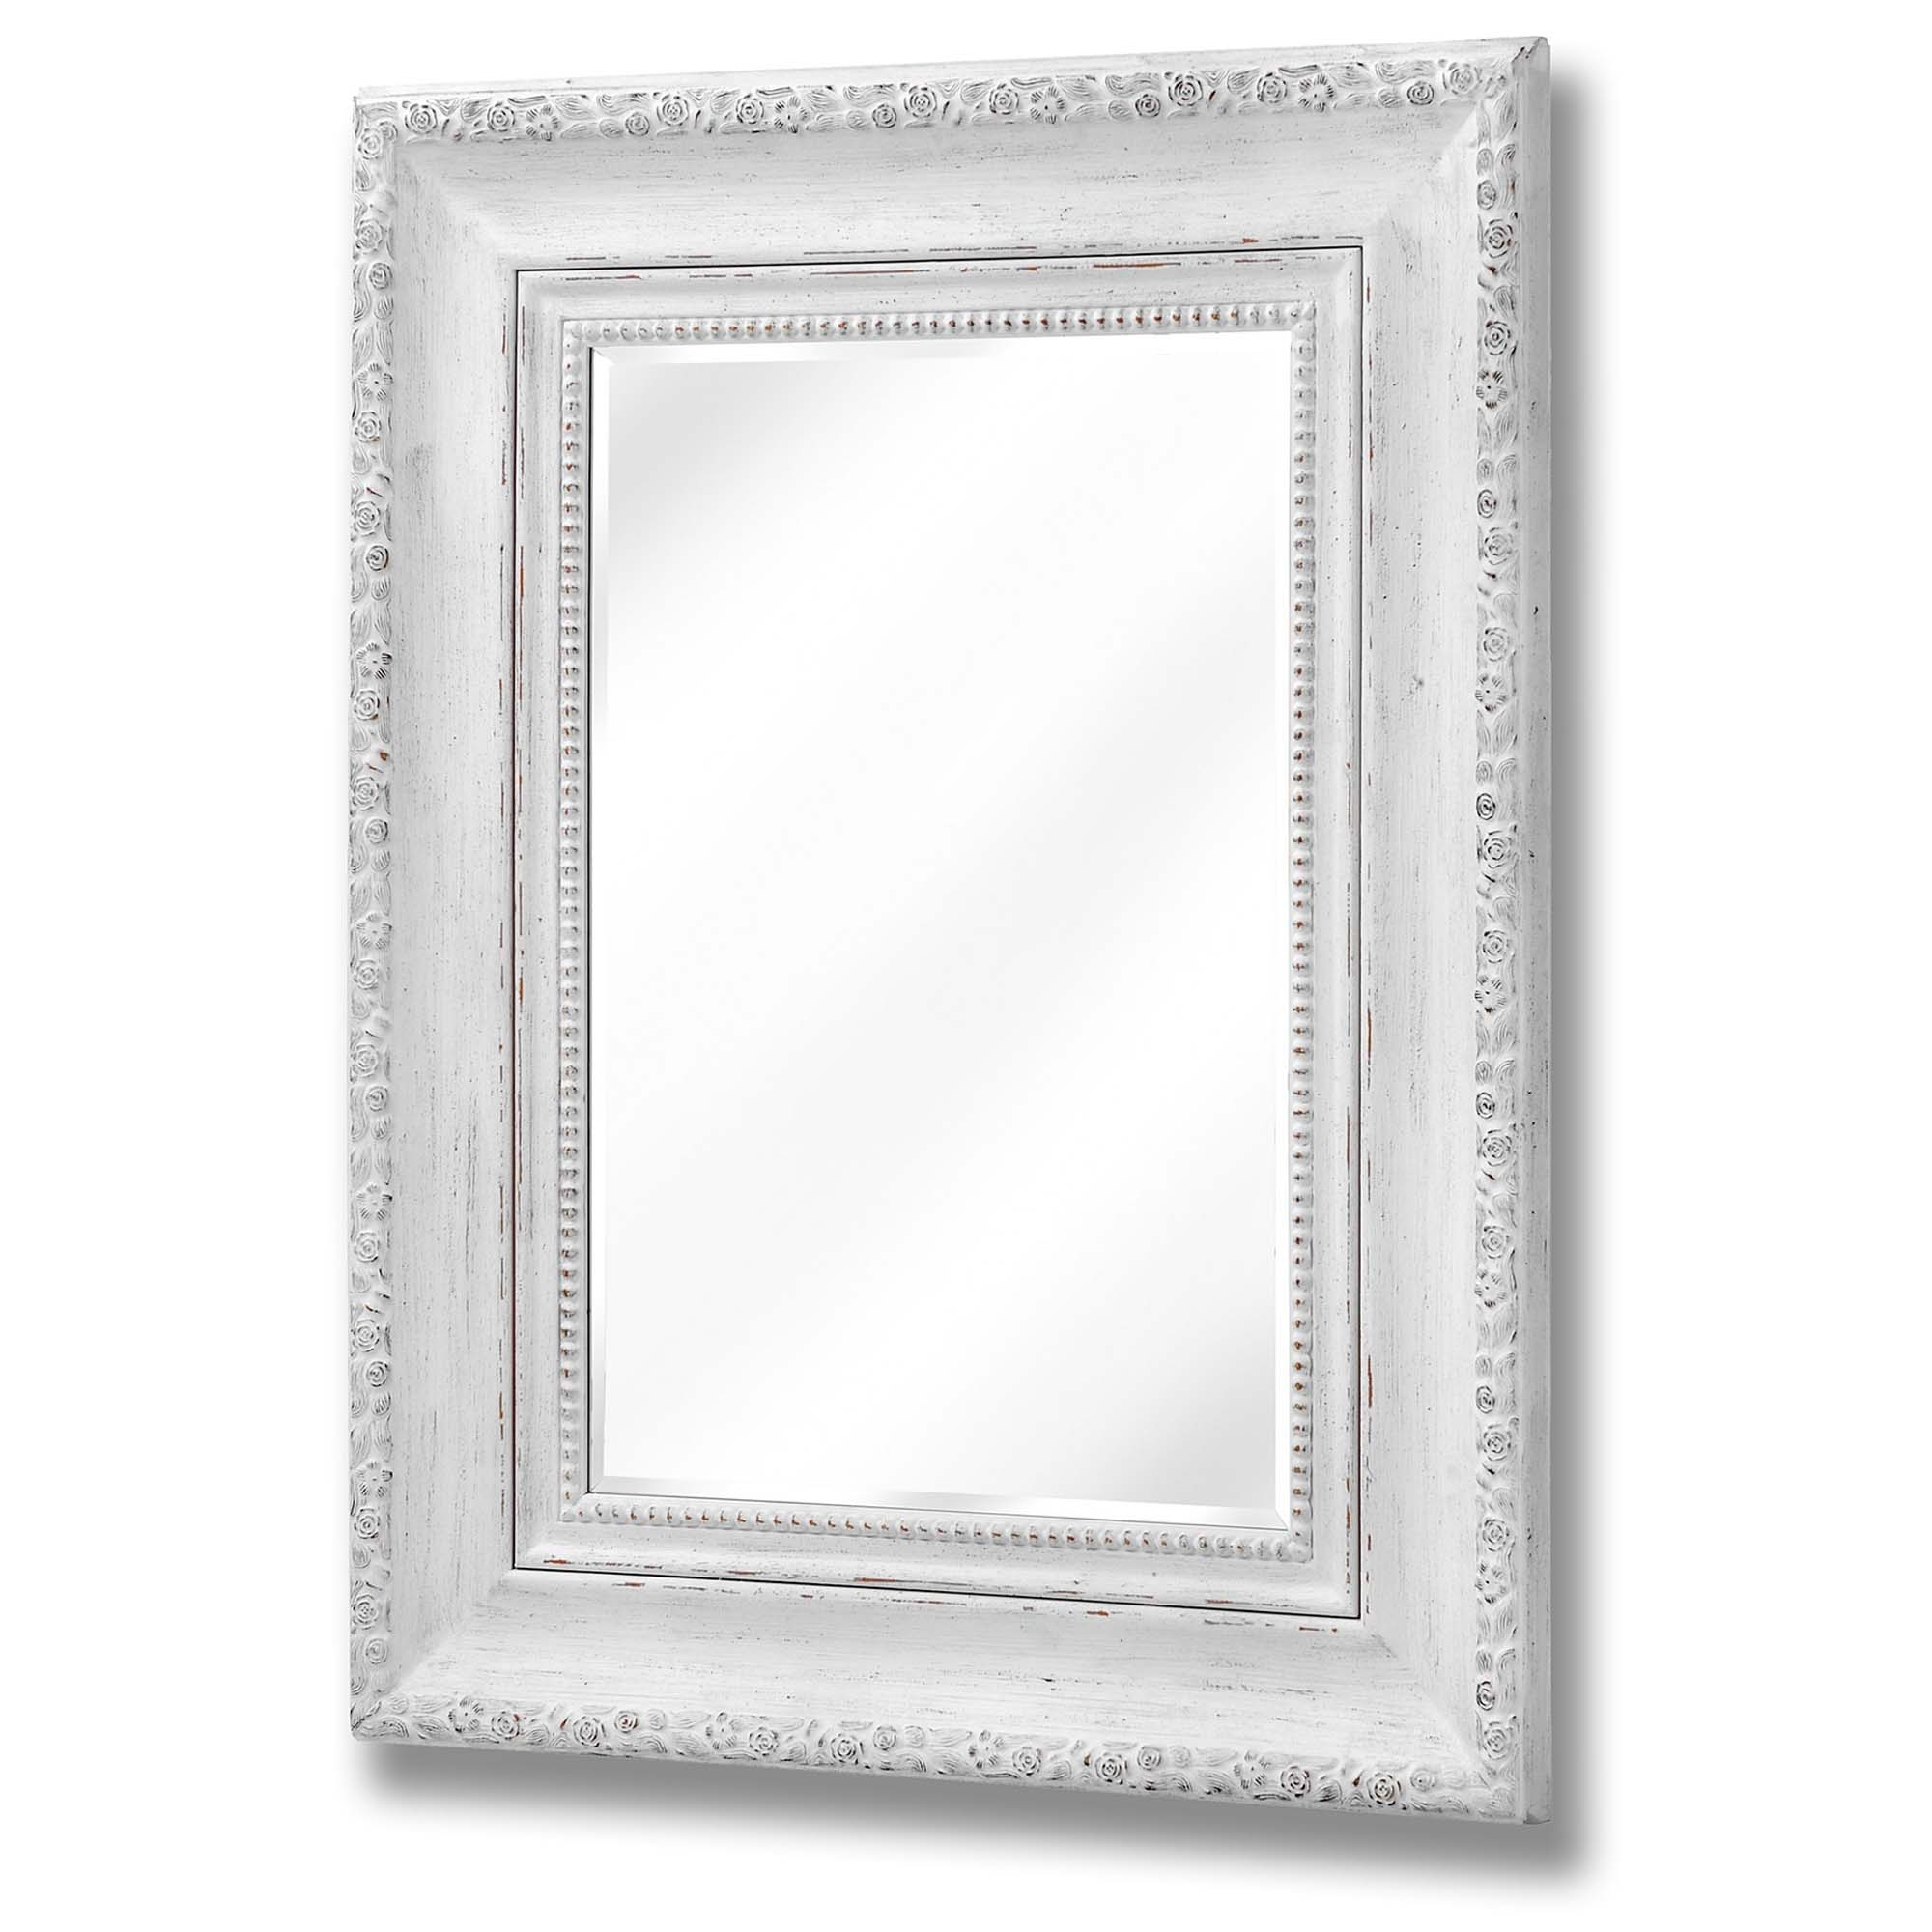 Antique White Rose Wall Mirror Wall Mirror Homesdirect365